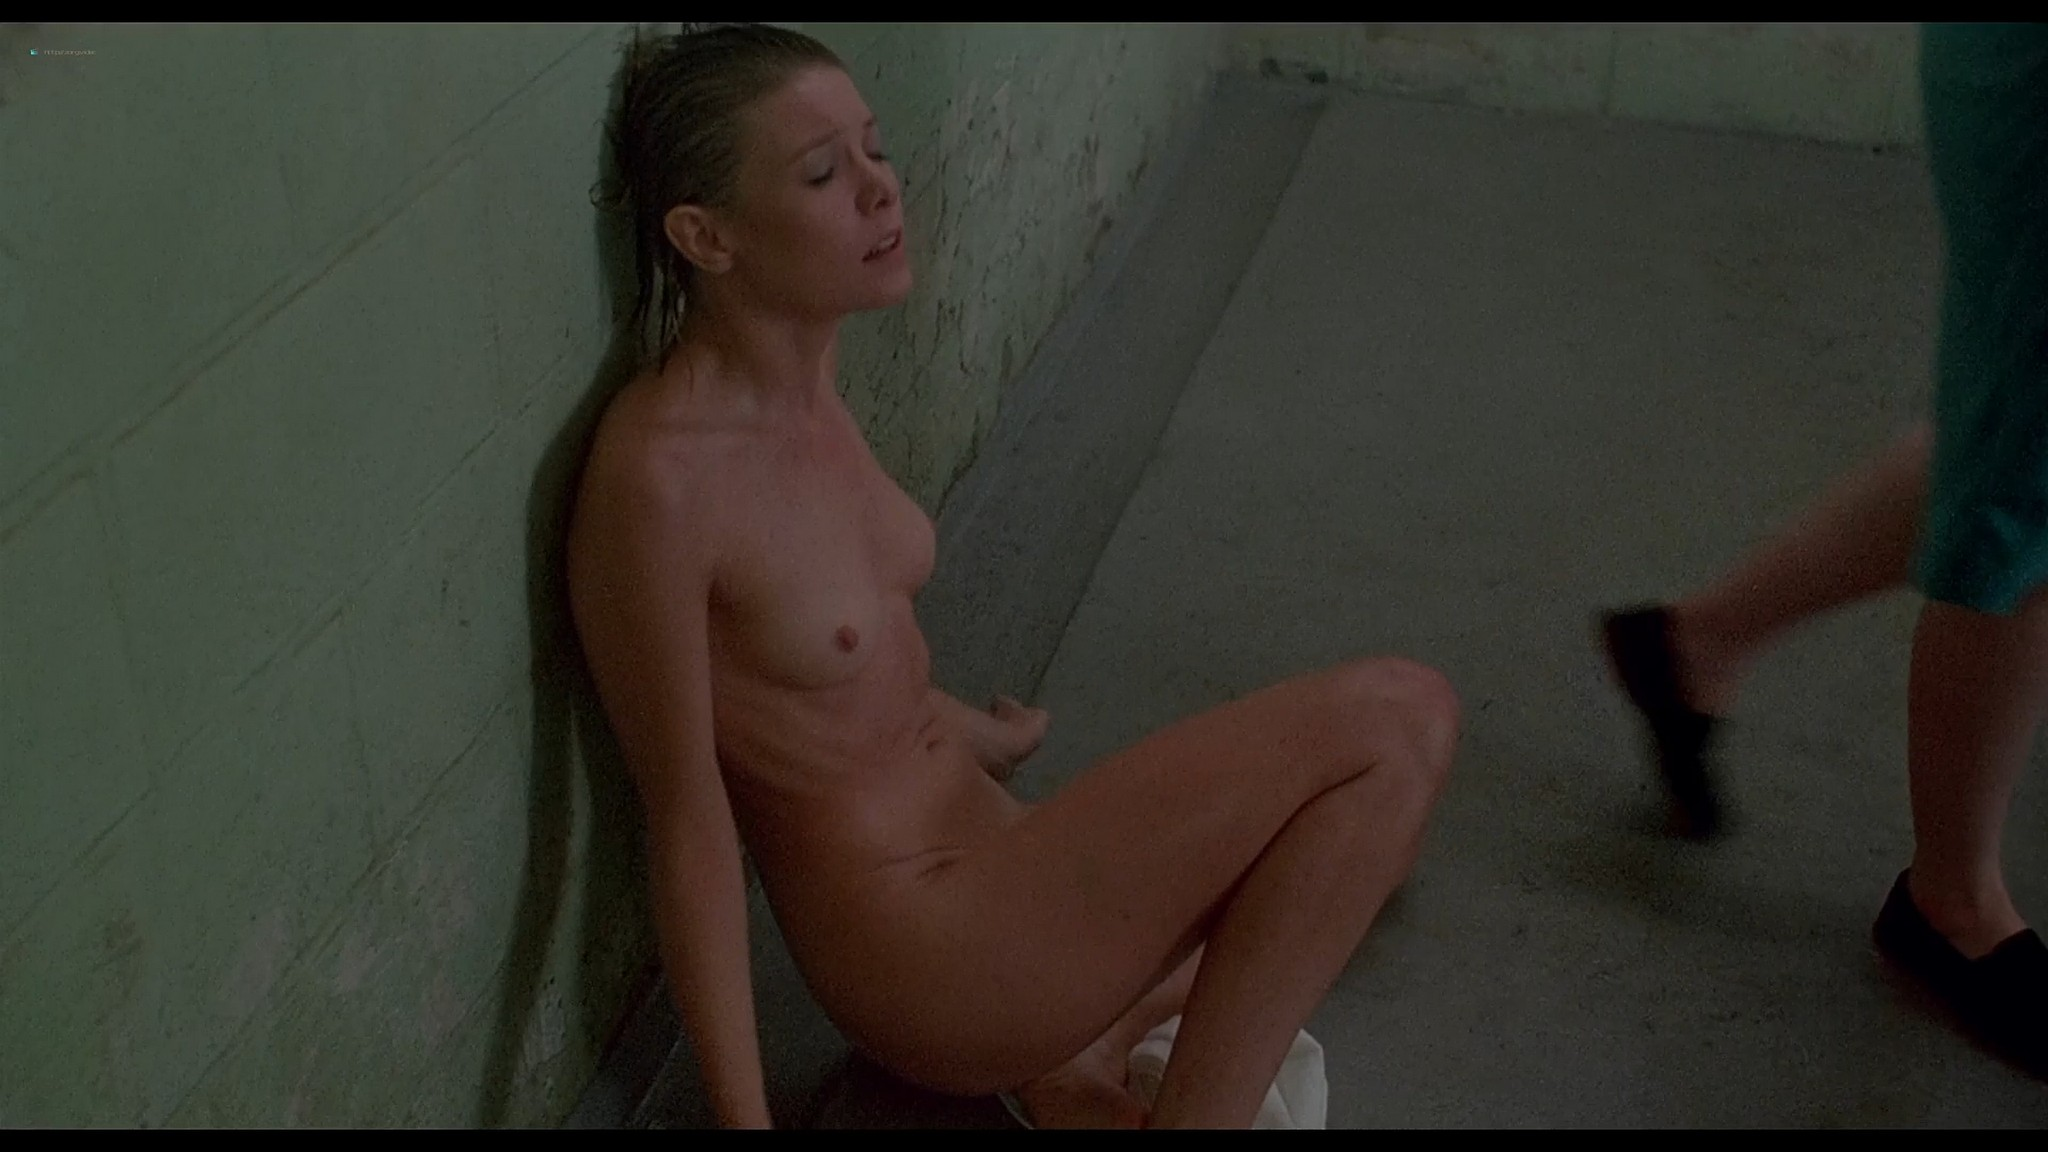 Shari Shattuck nude in shower Lisa London and others nude The Naked Cage 1986 HD 1080p BluRay 18